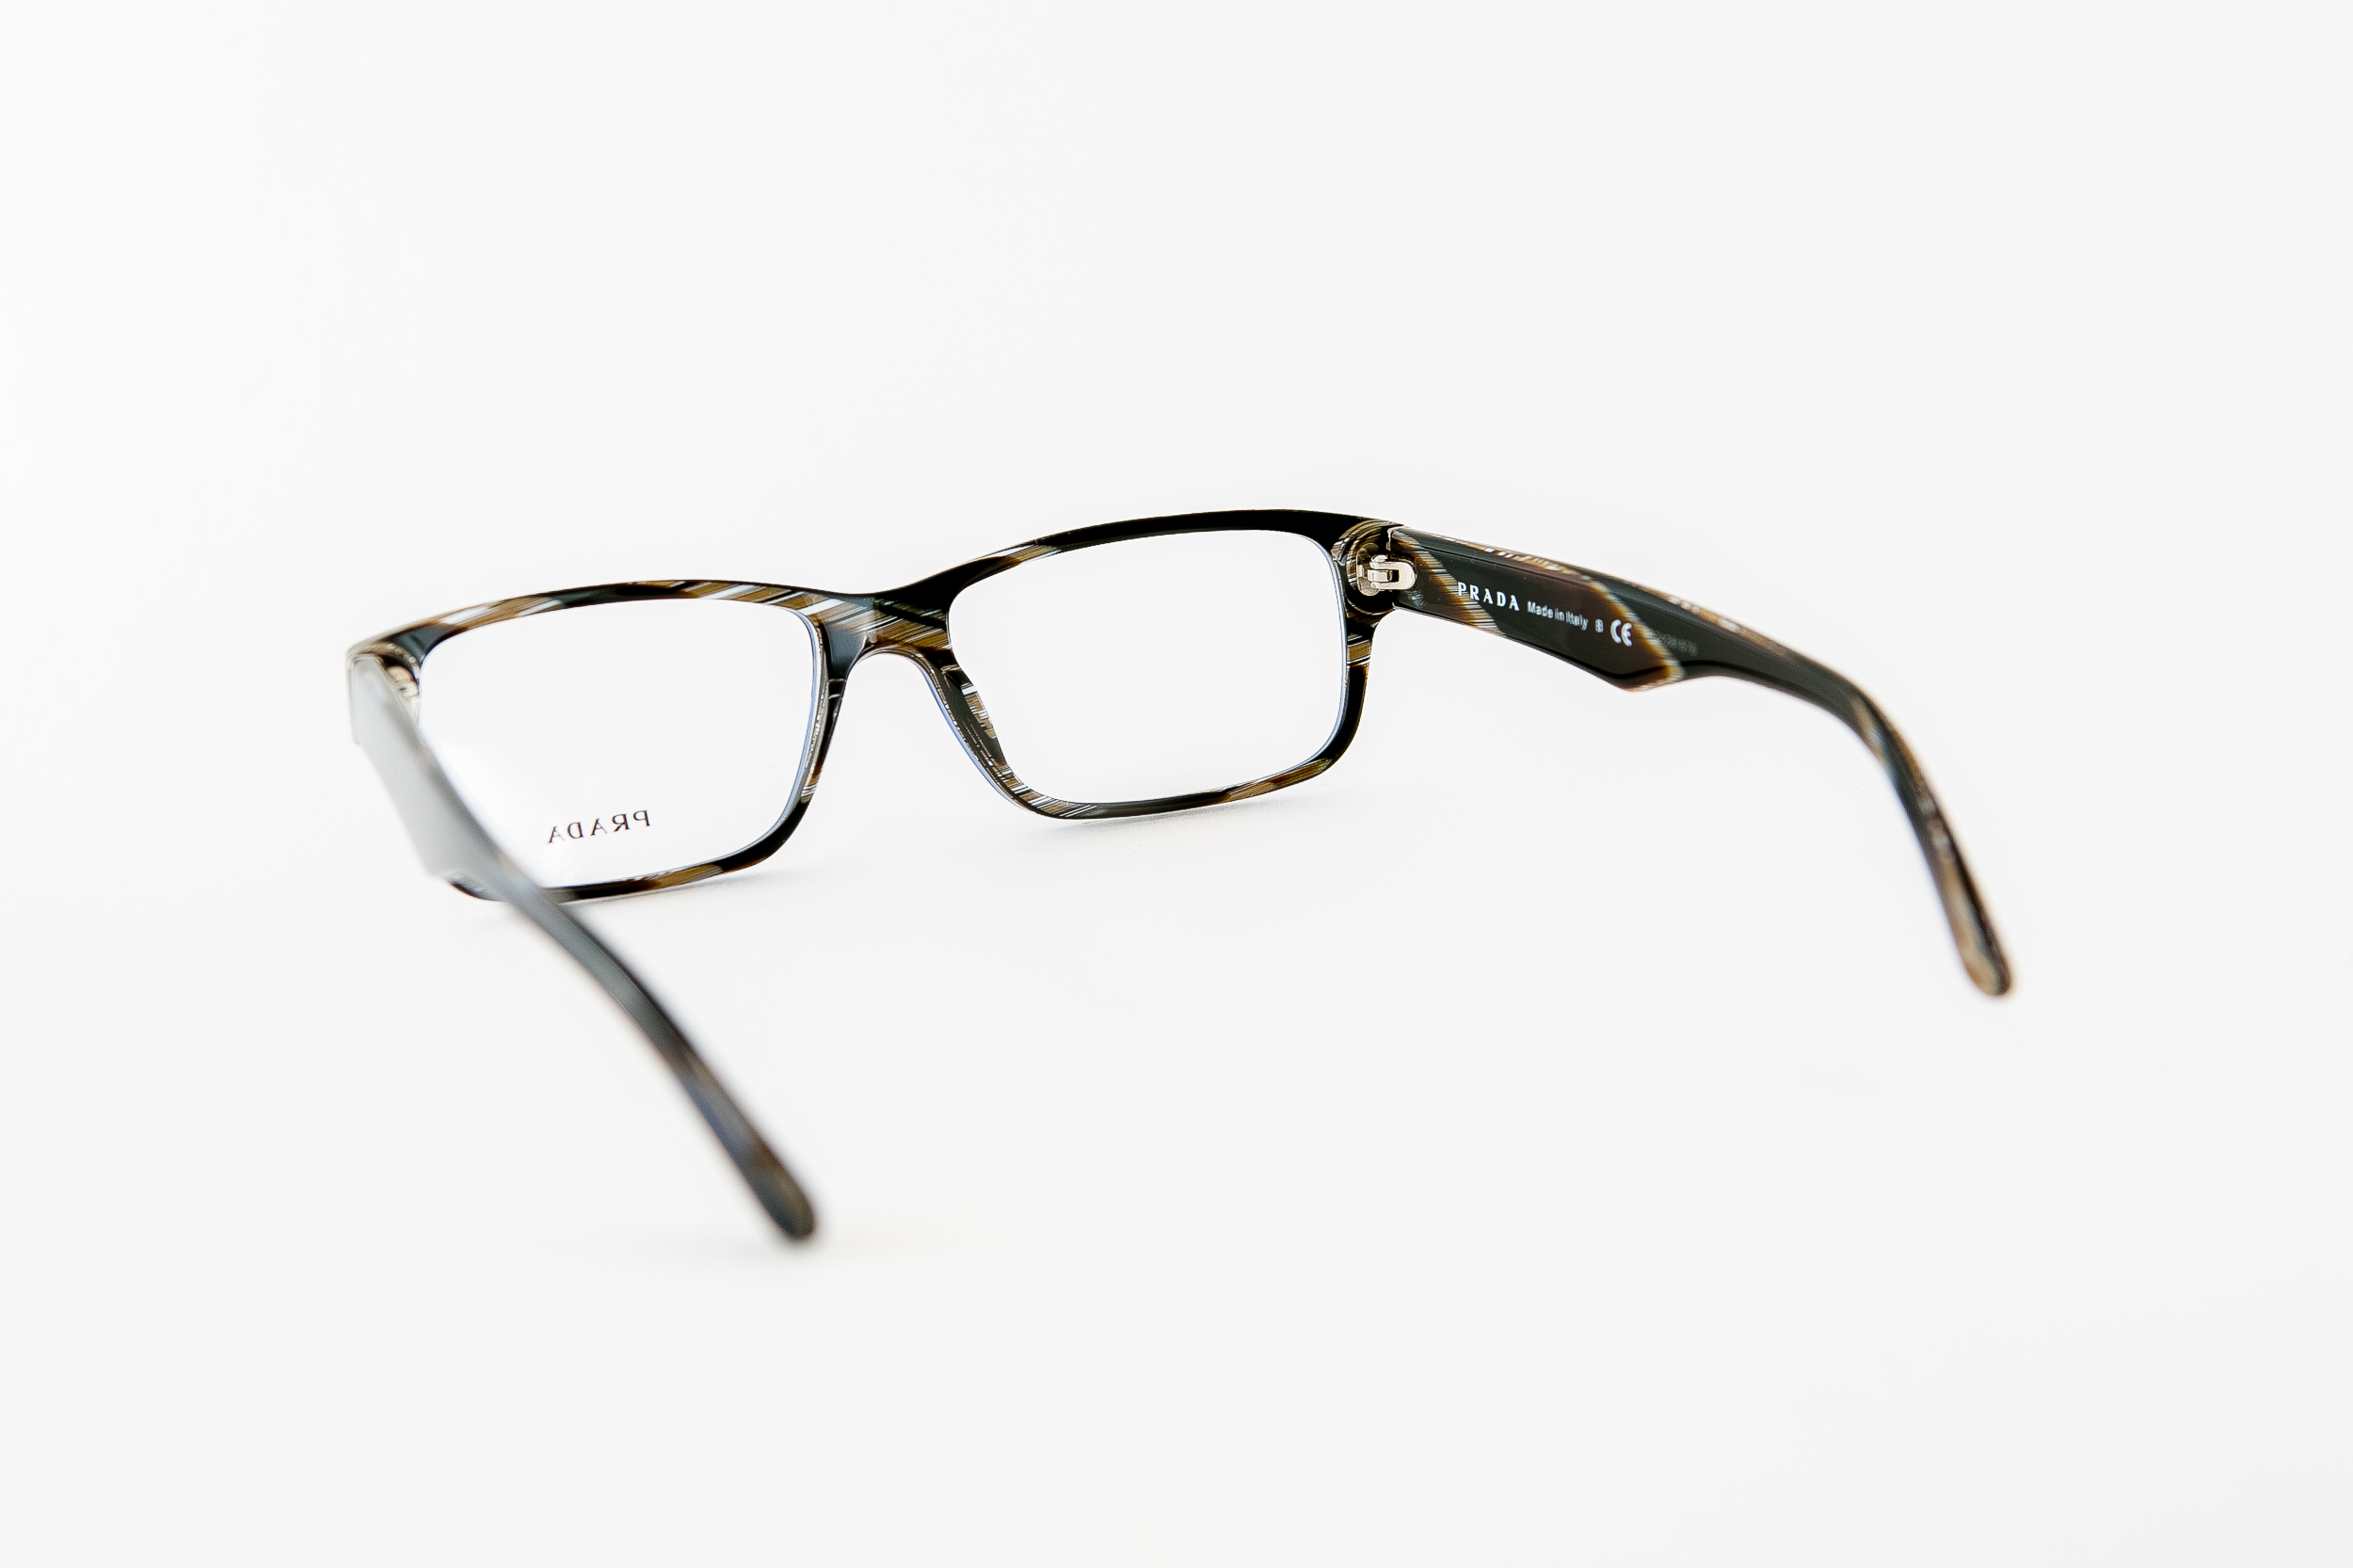 Glasses Frame Hurt Ears : PRADA Eyeglasses-VPR 16M EAR-1О1 Brown eBay